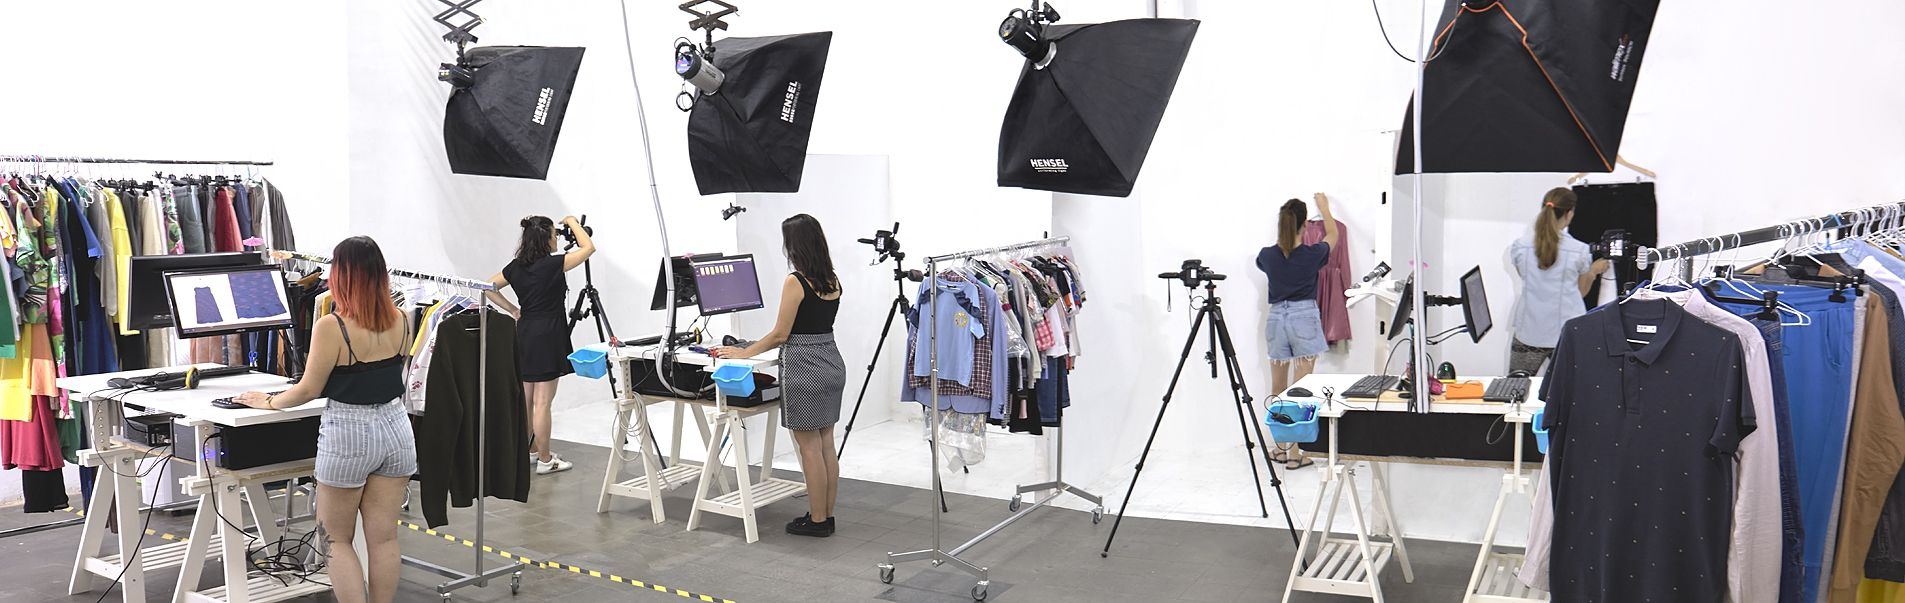 Studio with 1600 sq specialising in product photography for eshop